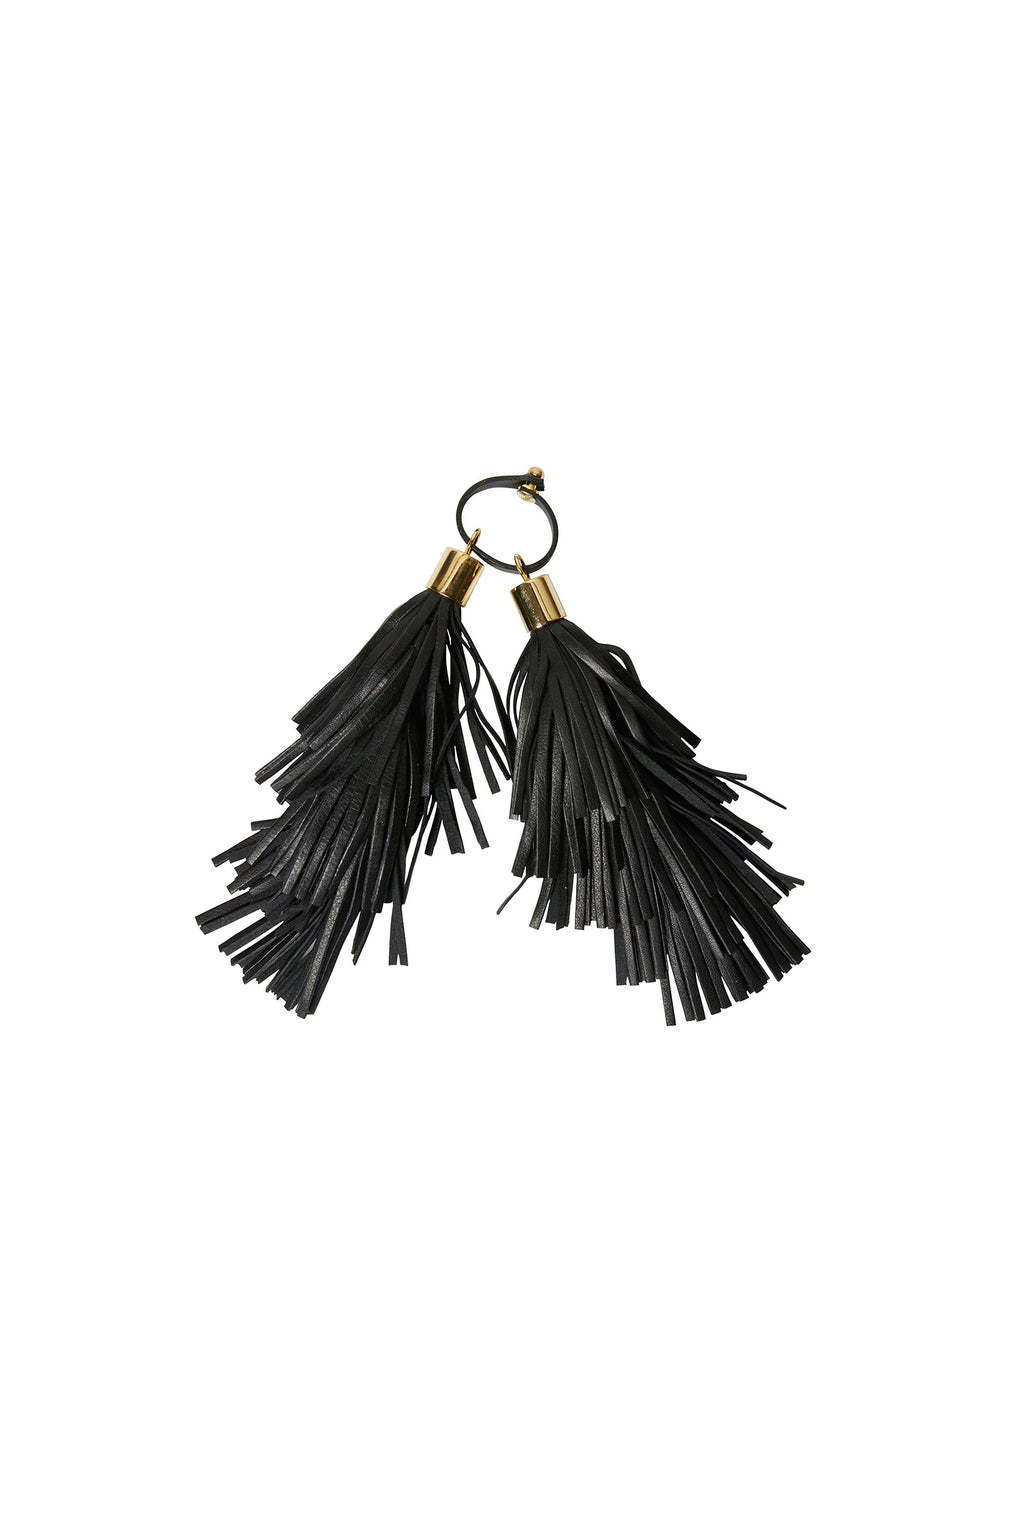 Double Leather Tassels for Satchel Bag